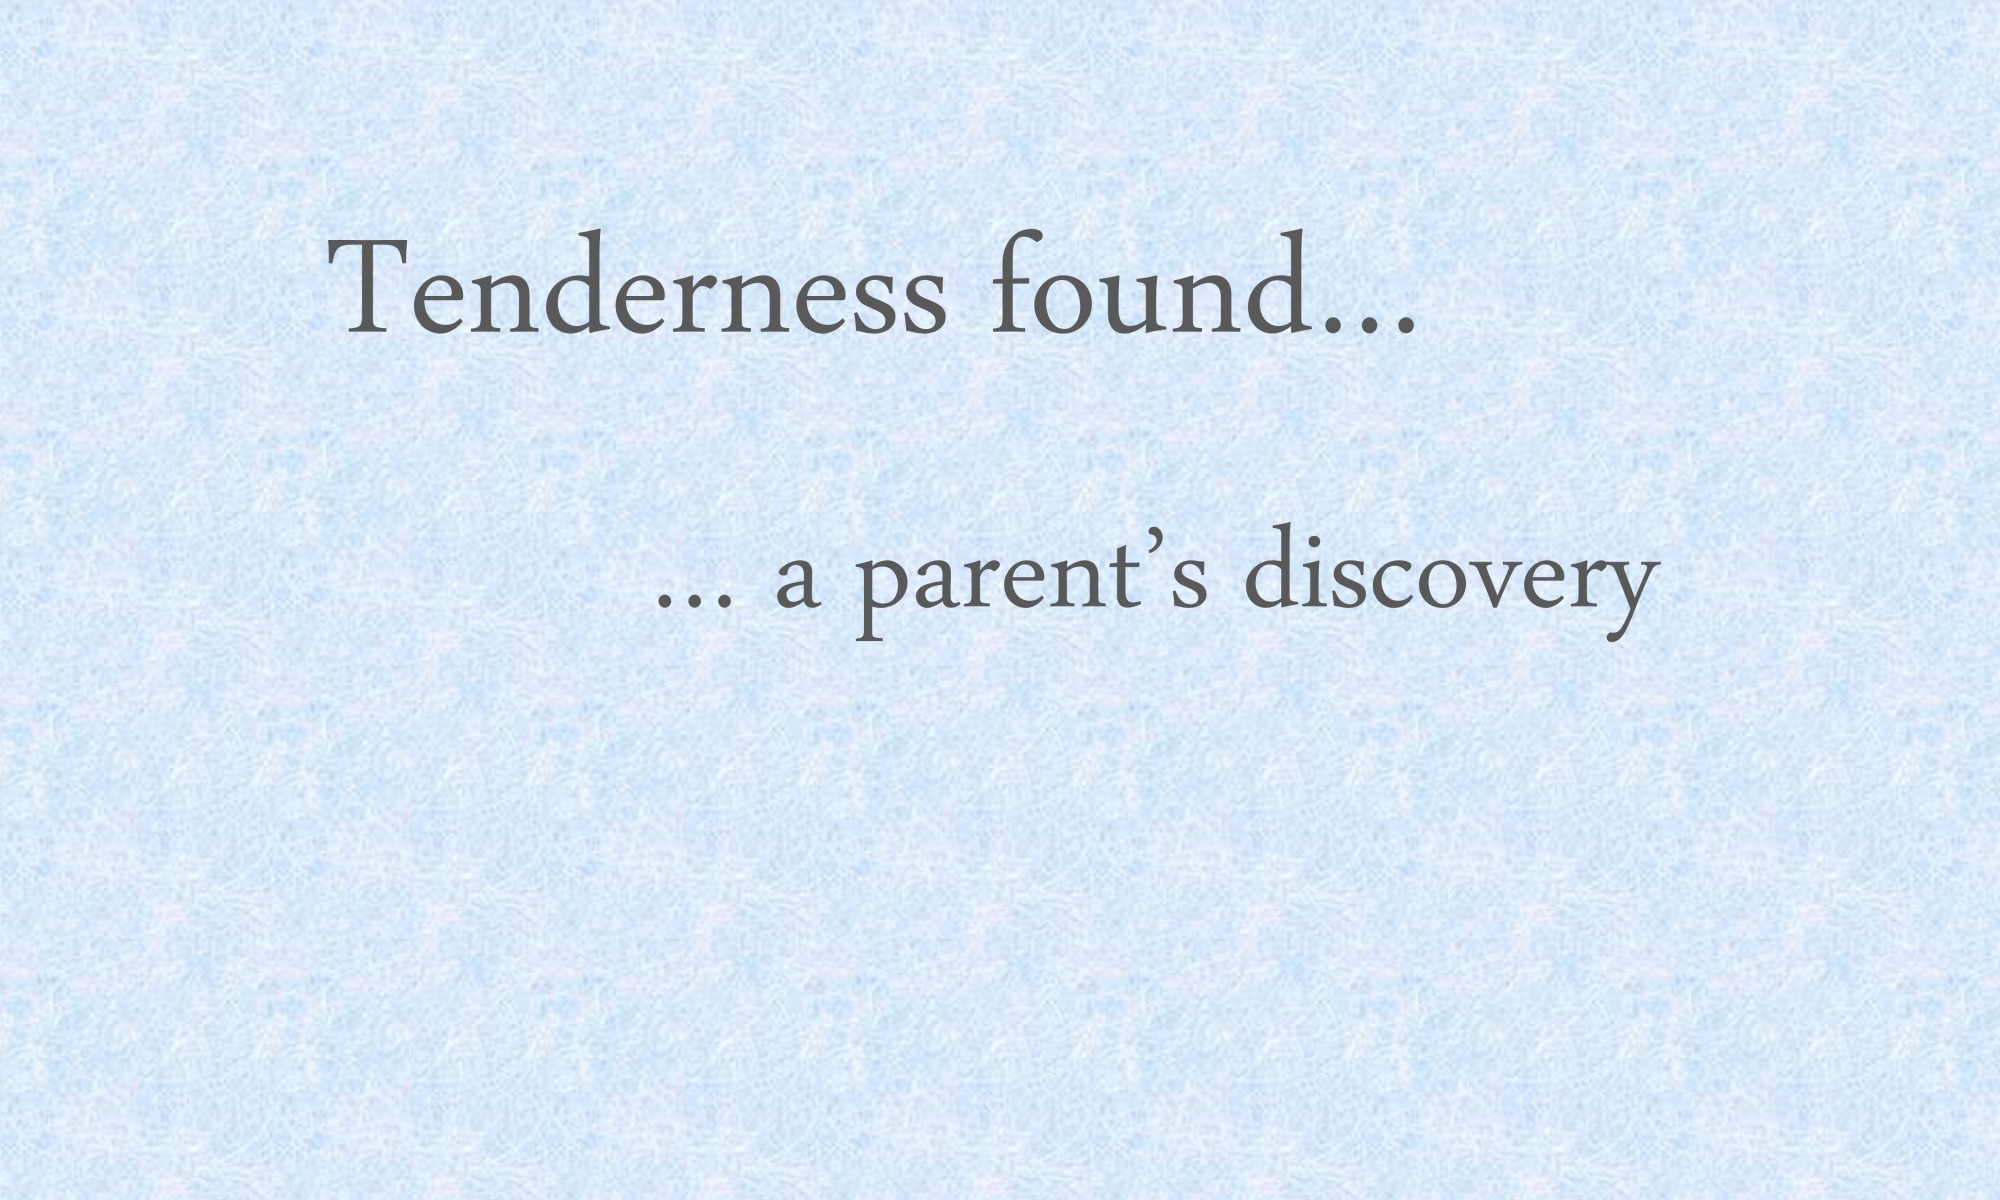 Image of title Tenderness found